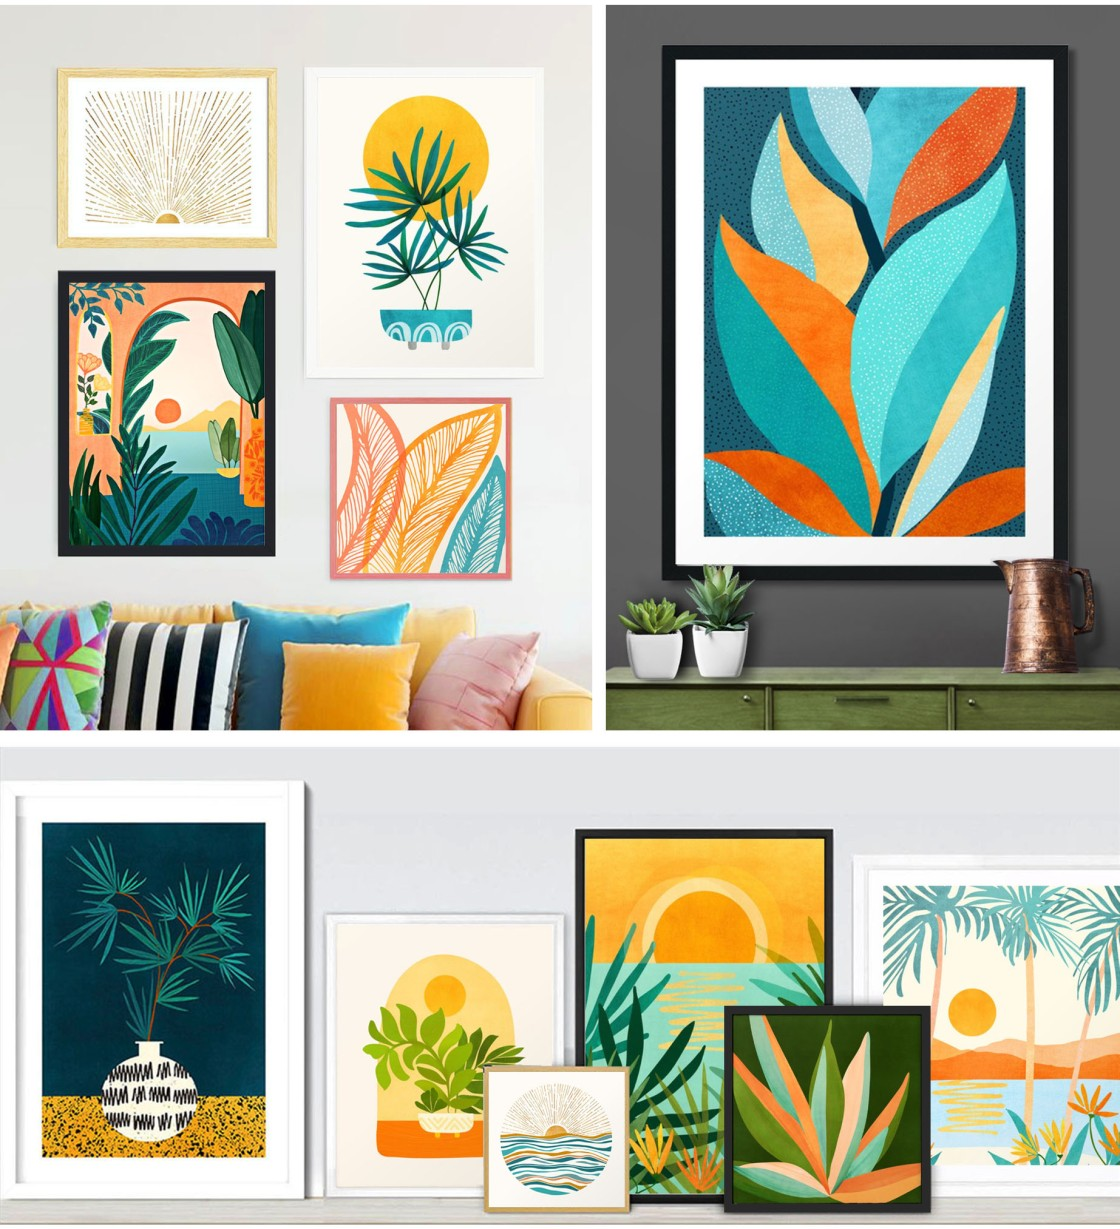 Official site of Modern Tropical art and decor by Kristian Gallagher